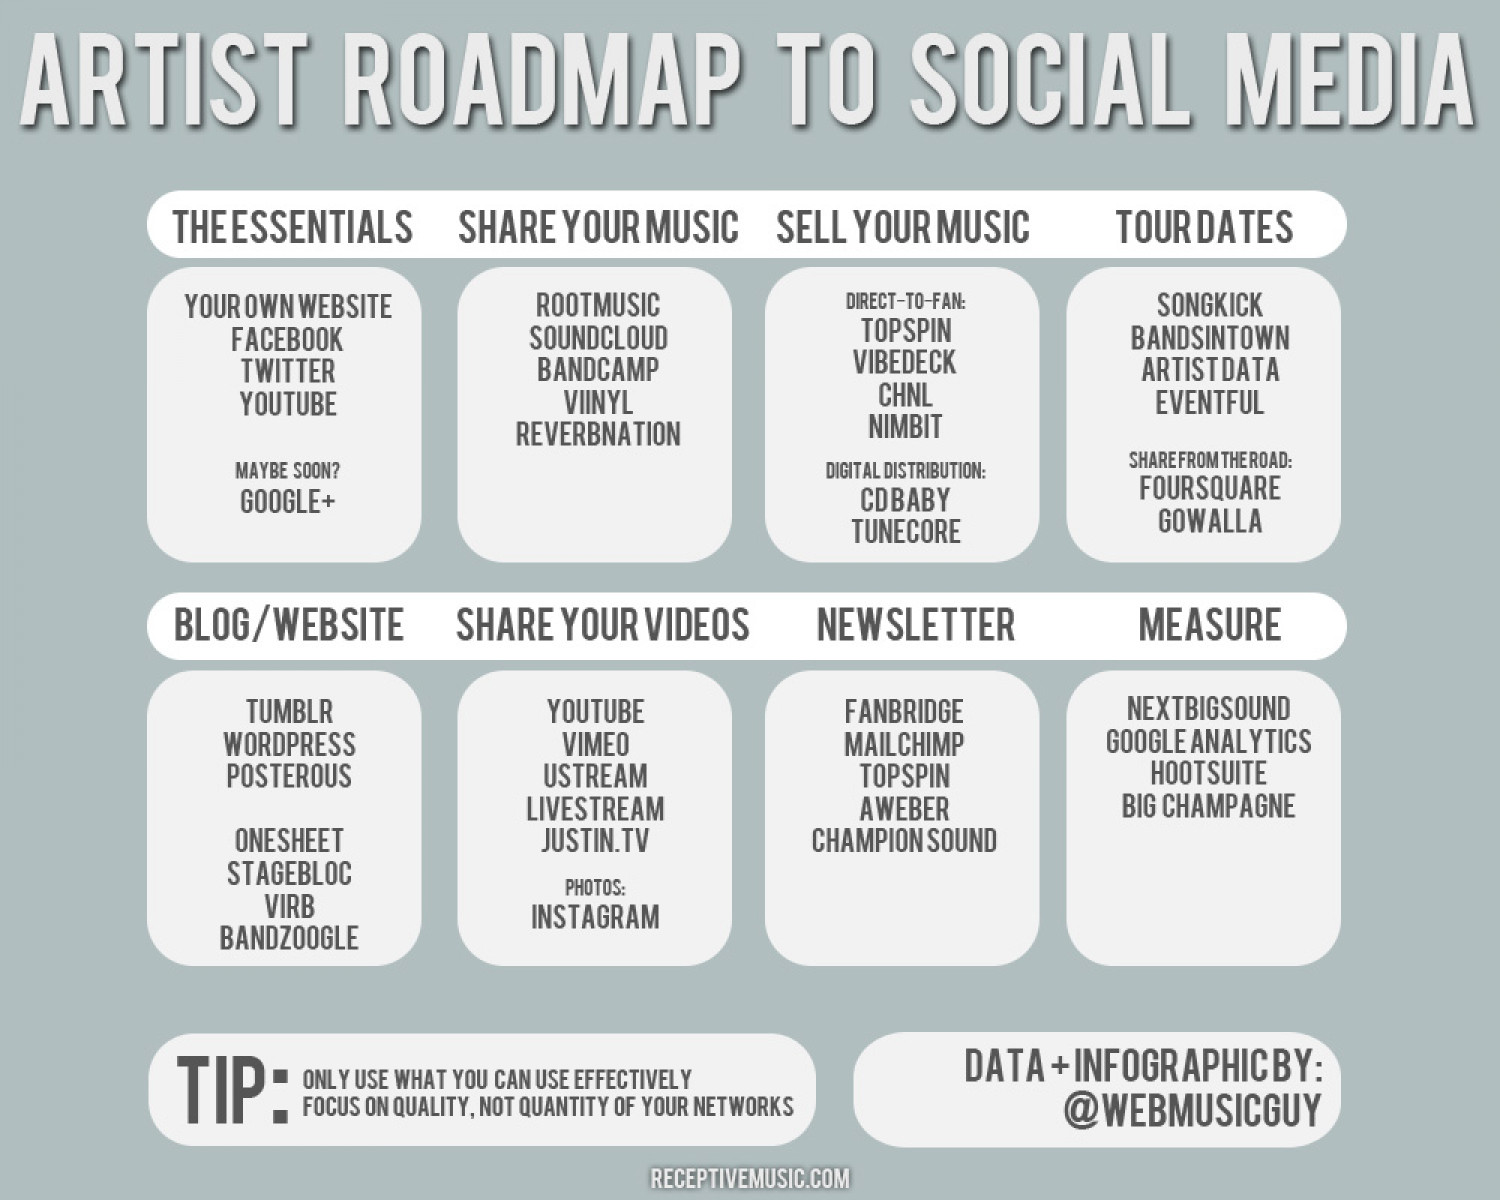 Artist RoadMap to Social Media Infographic